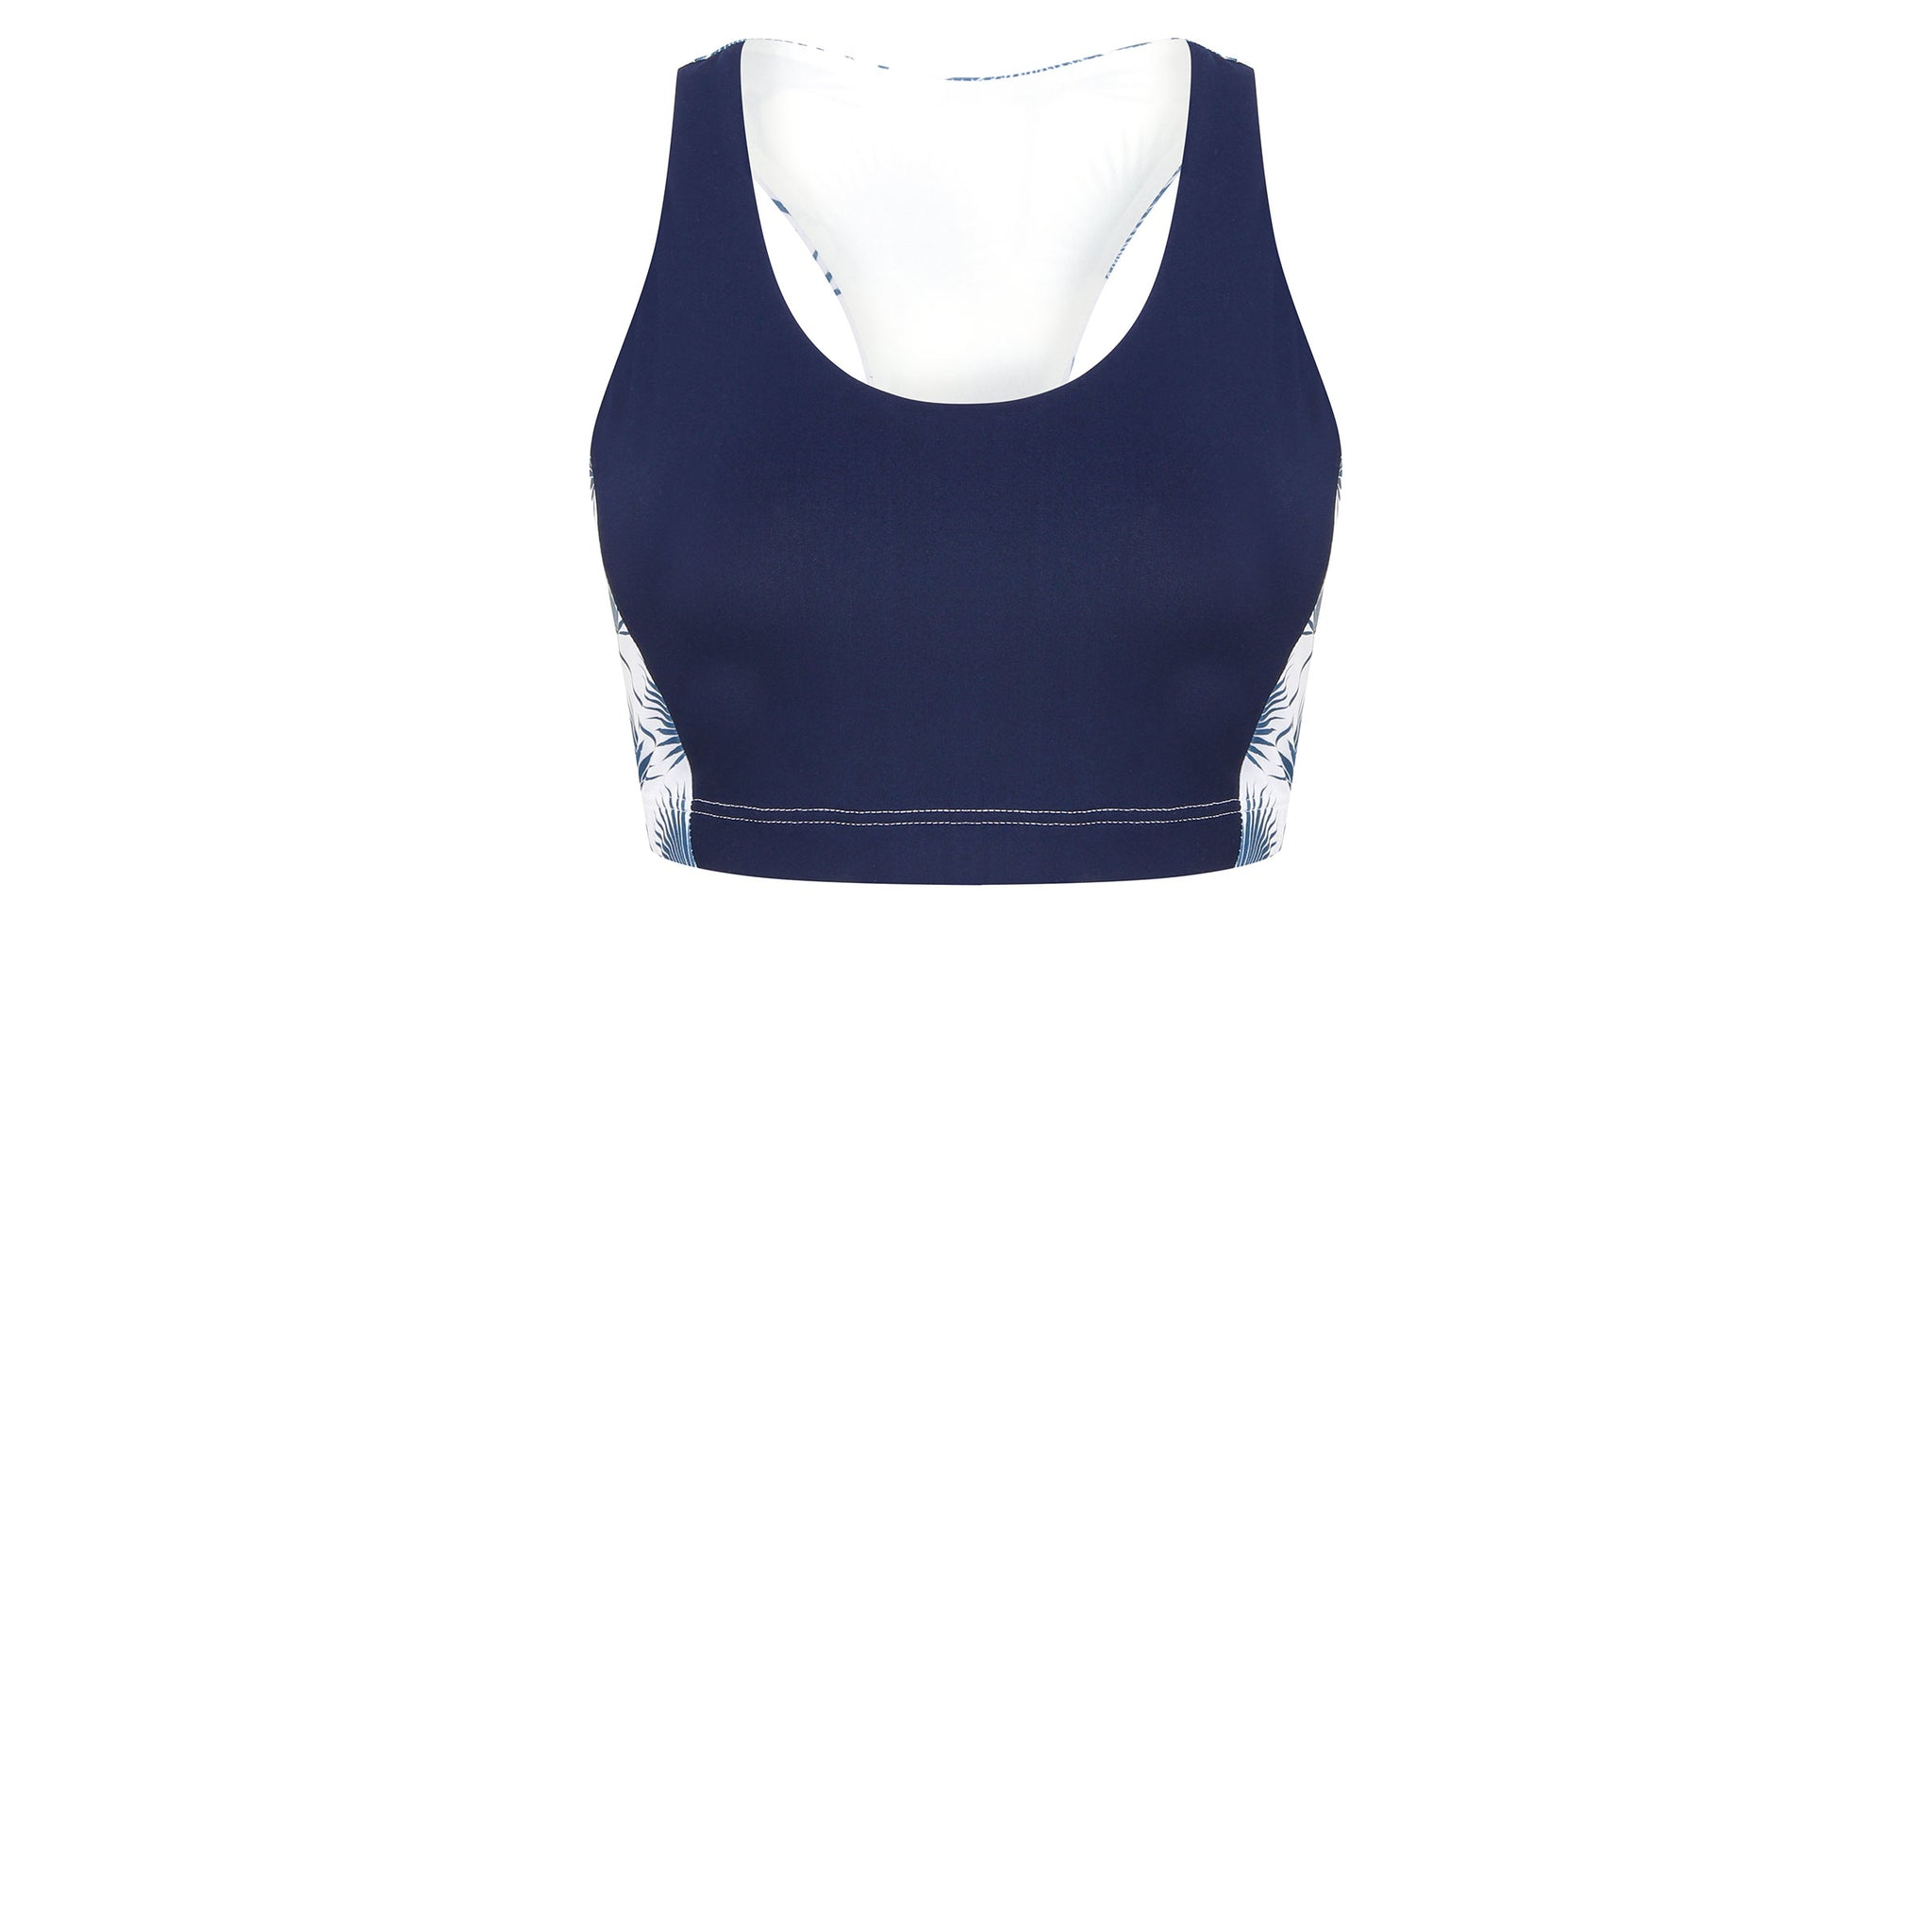 c8b1f87e8989a4 Sports Cropped Top : FAN PALM NAVY designed by Lotty B for Pink House  Mustique